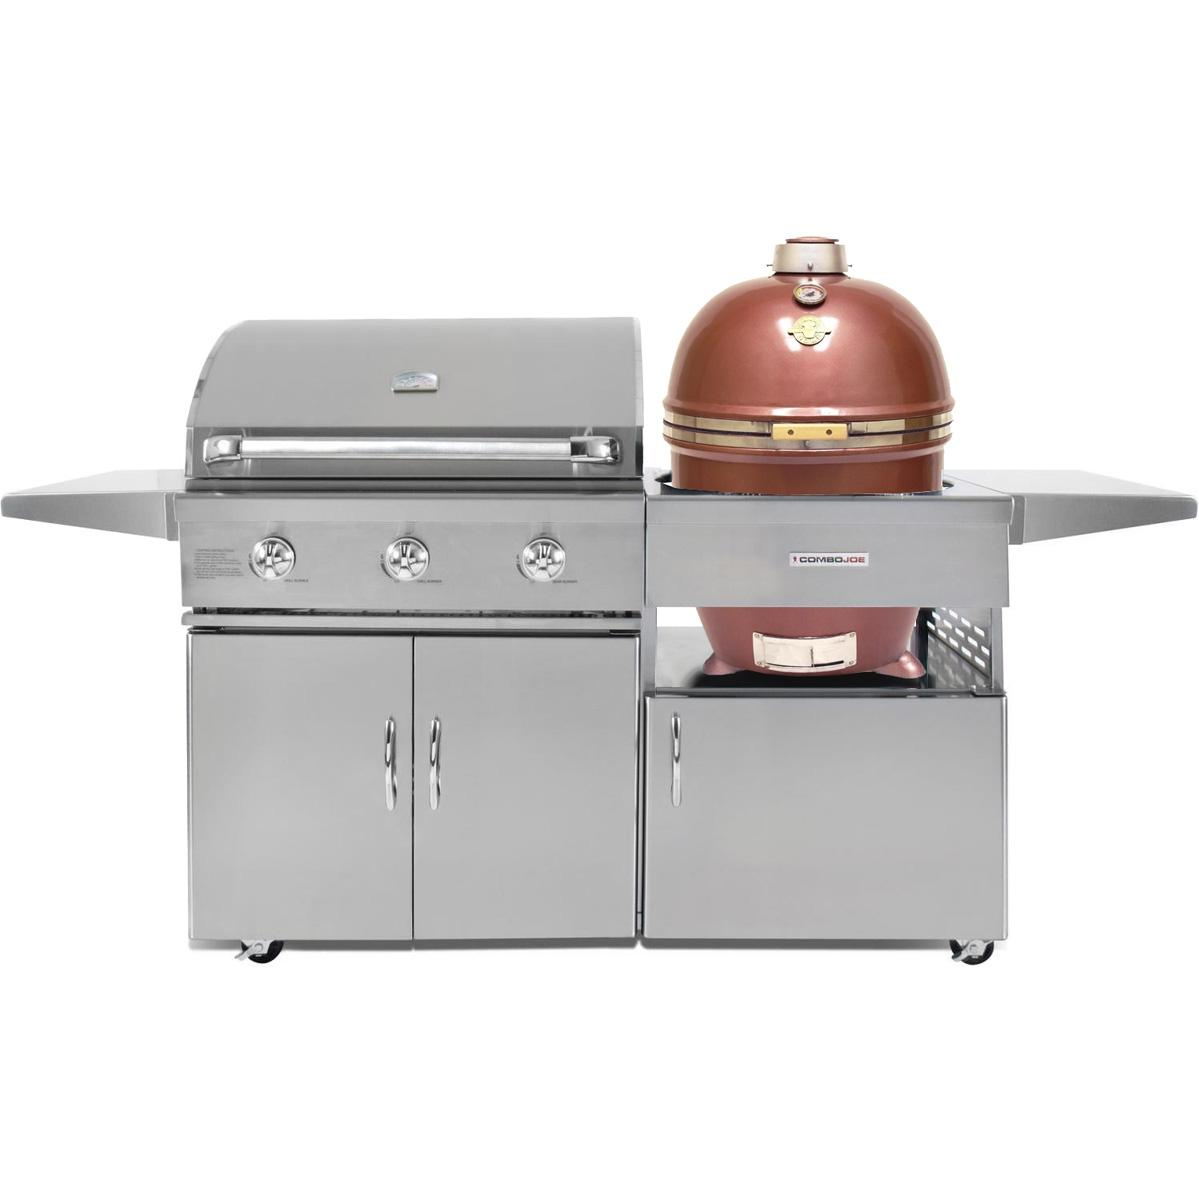 Grill Dome Infinity Series Copper Kamado And 32-Inch Natural Gas Grill On Cart, Discount ID GJ32S-NG CGJ32C GDL-CP